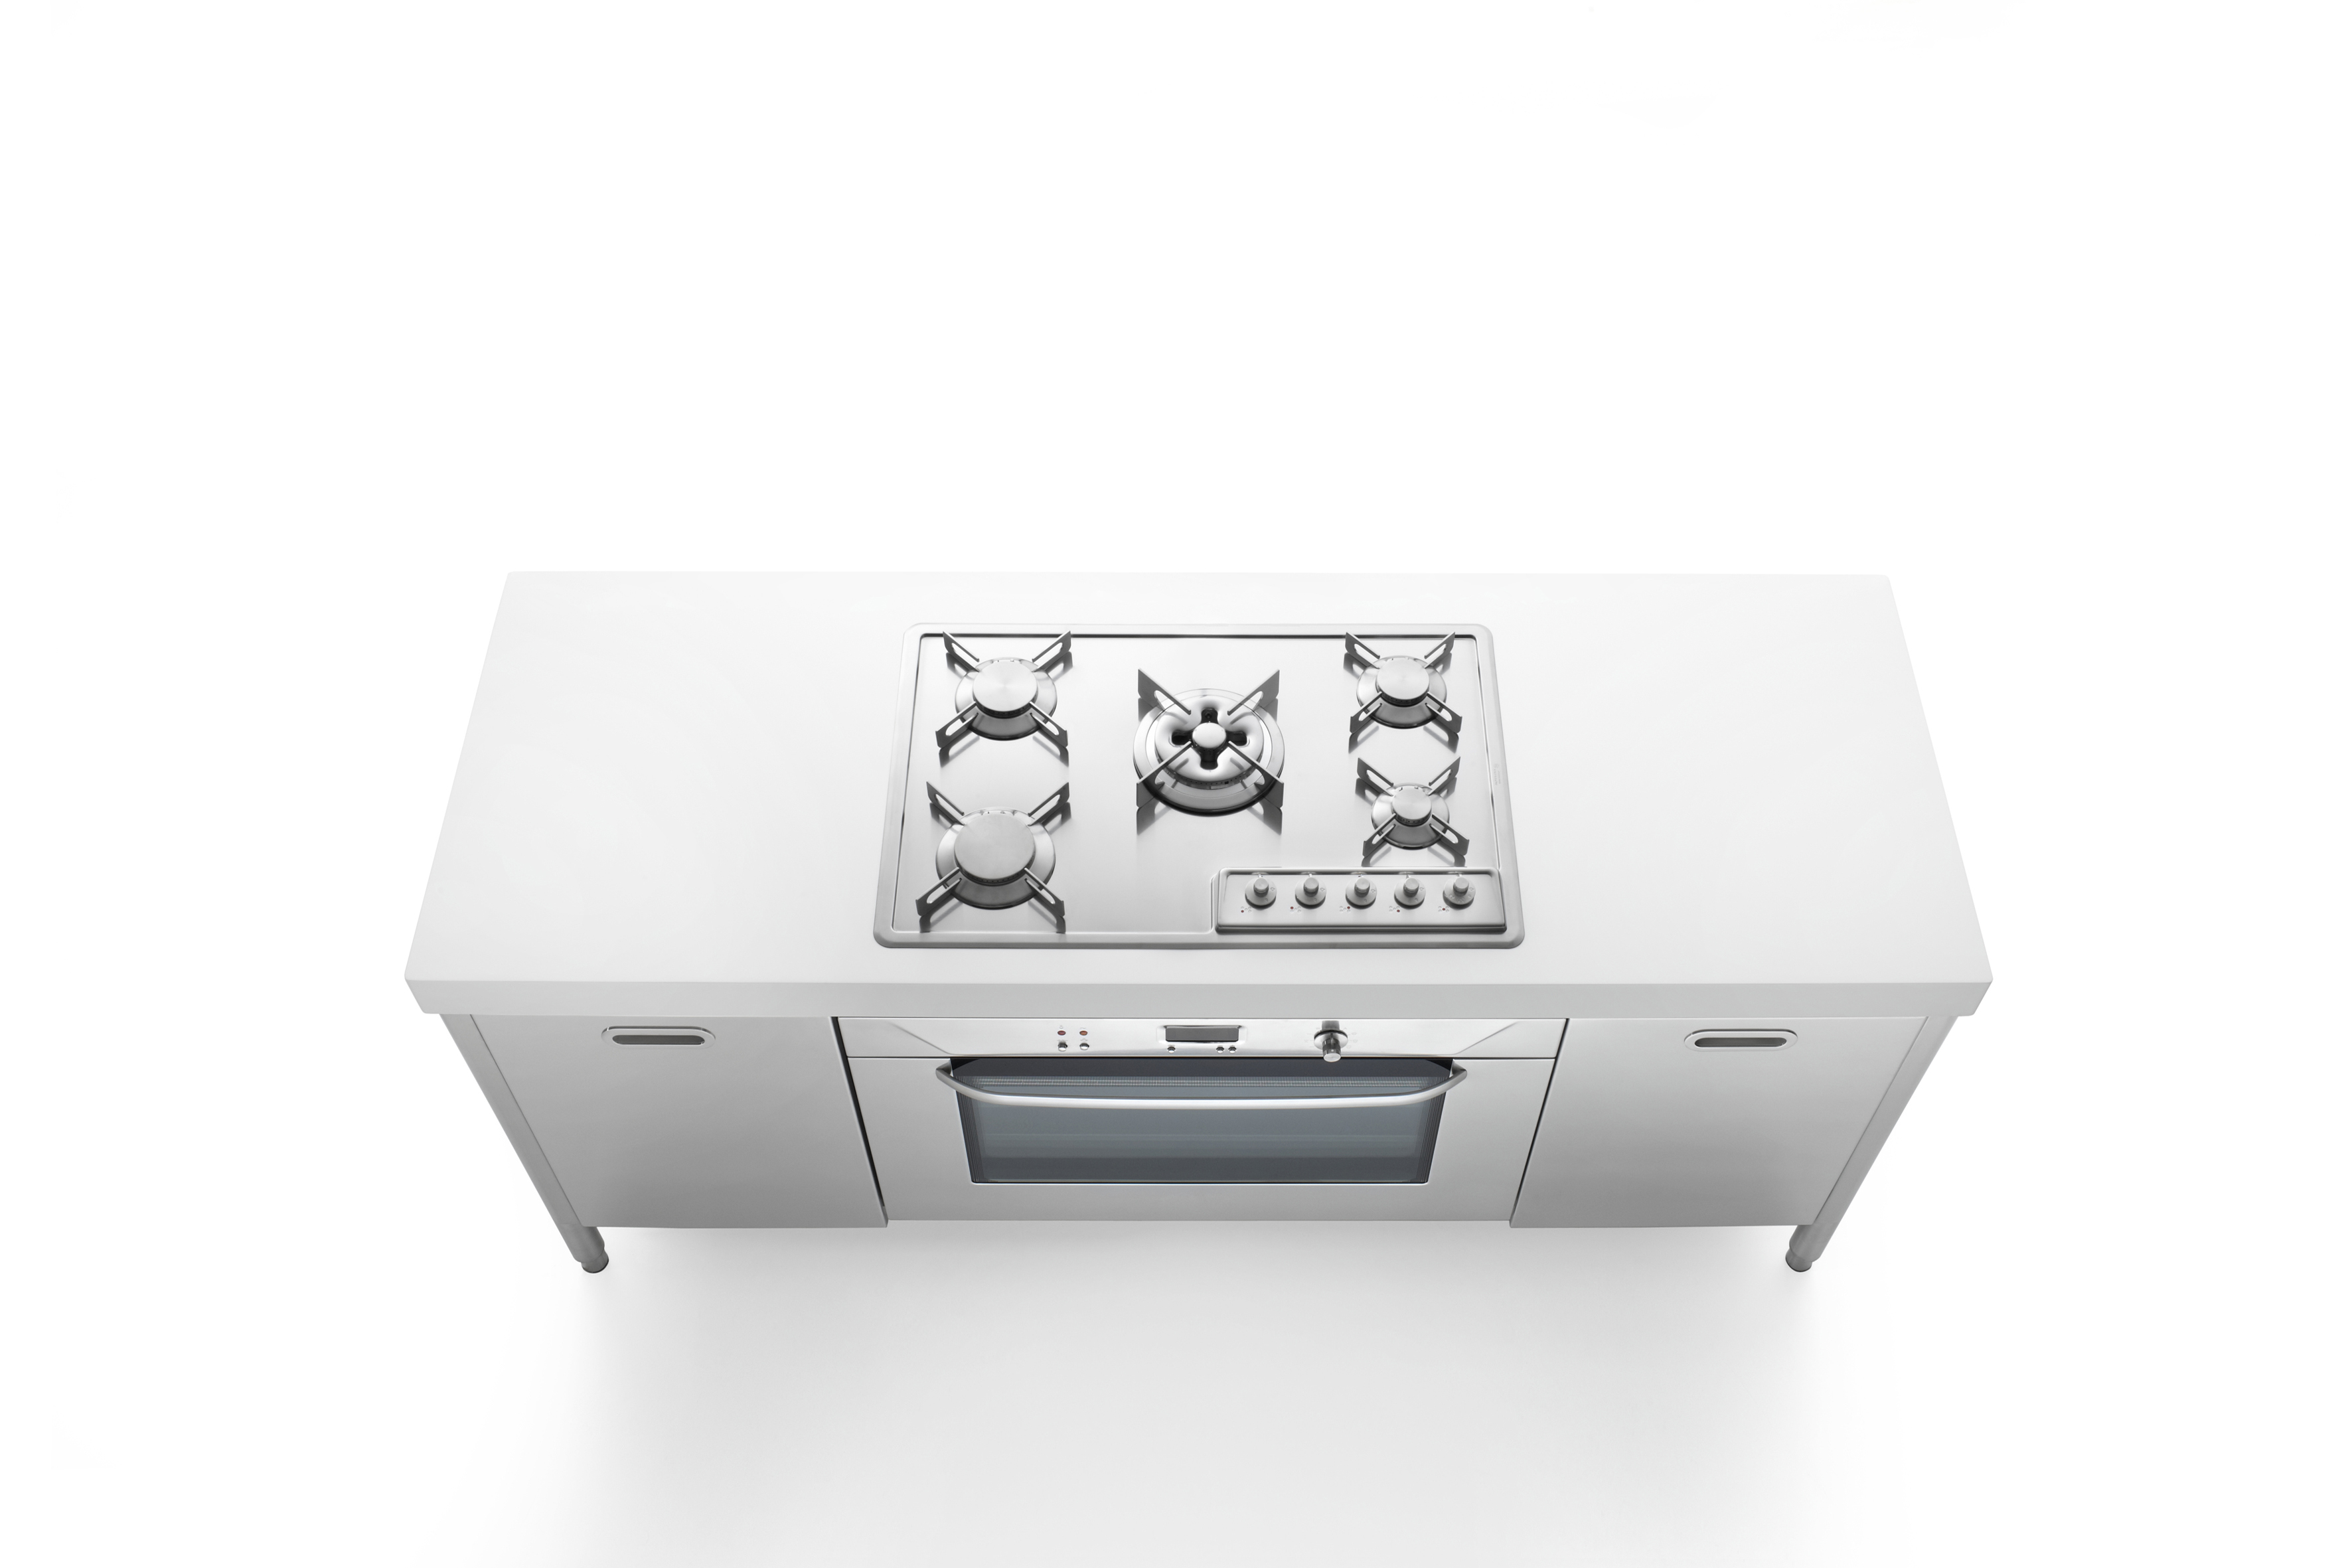 LIBERI IN CUCINA (FREE IN THE KITCHEN) by ALPES INOX s.r.l. | Media ...